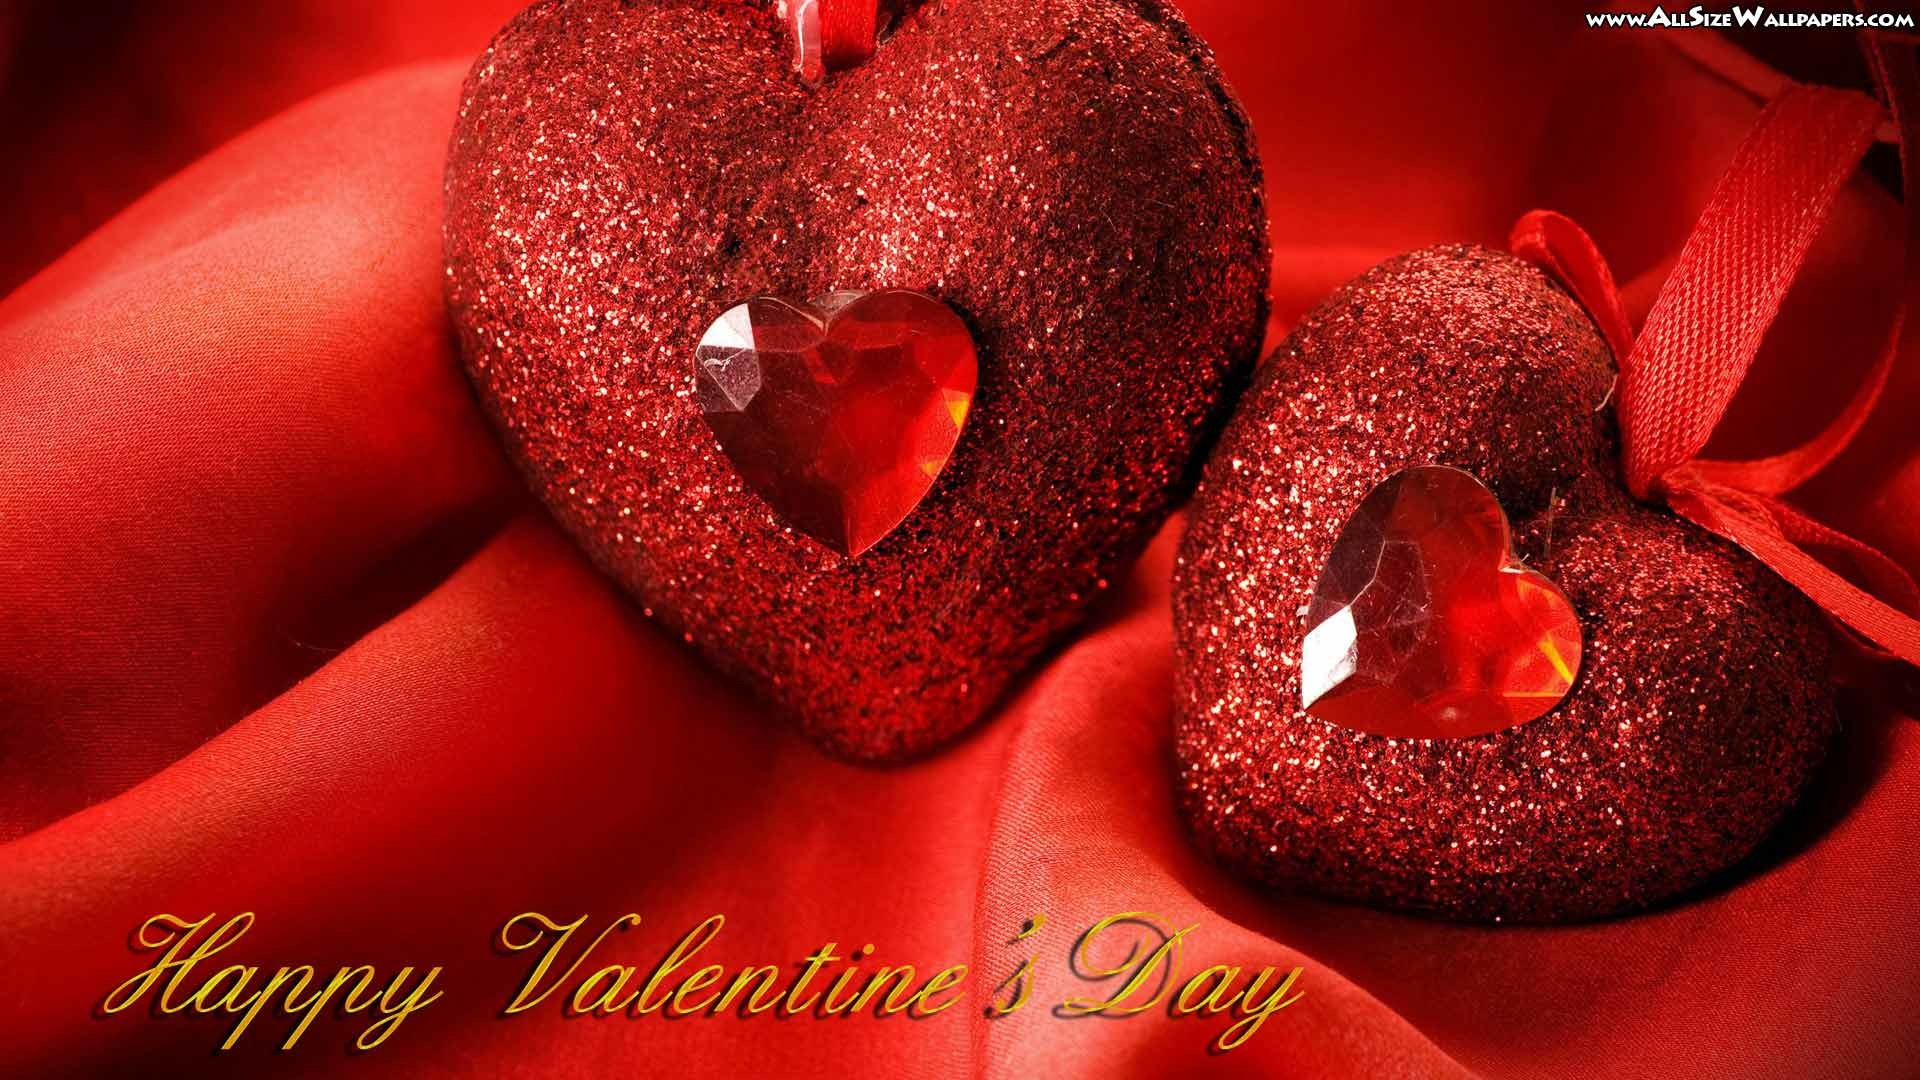 1920x1080 Beautiful Valentine Wallpapers (4)   High Quality Photos